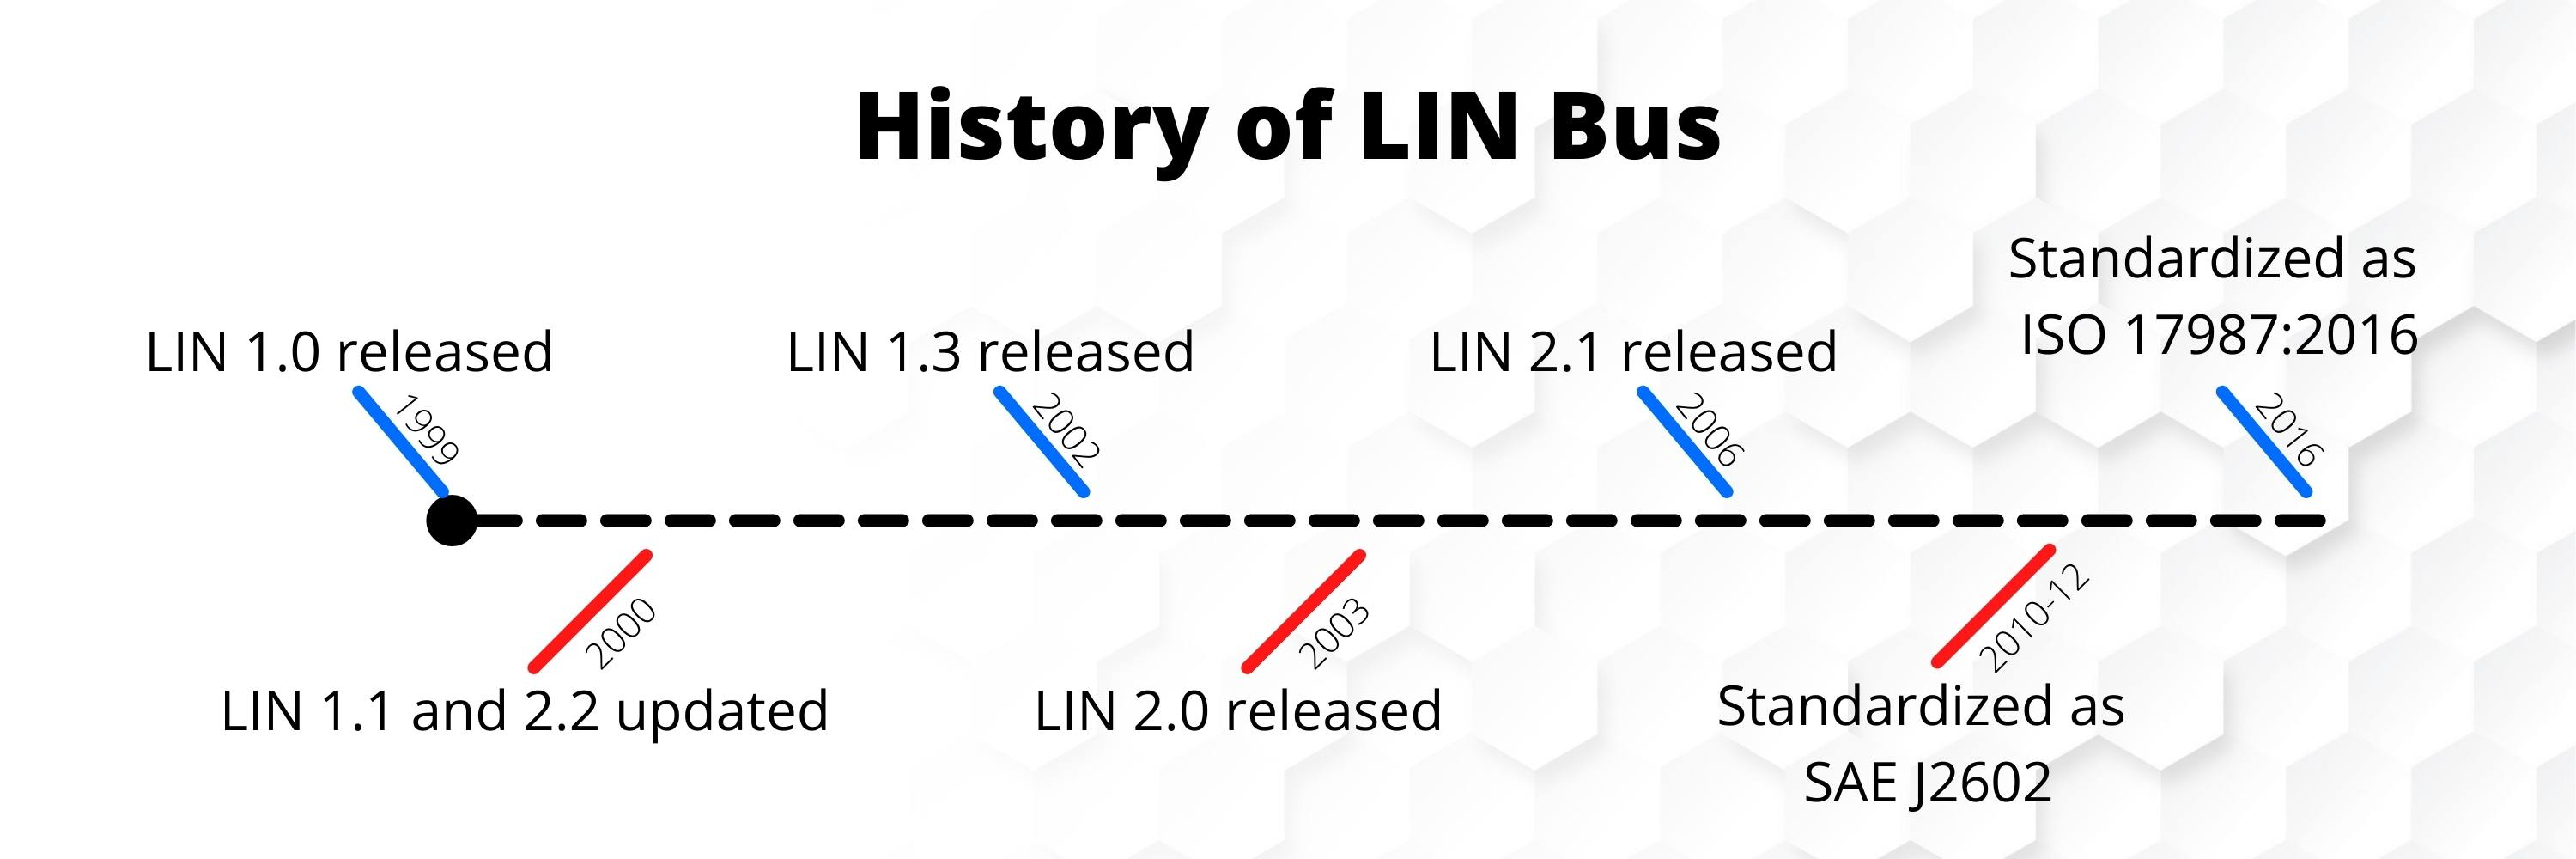 a timeline showing the history of lin bus